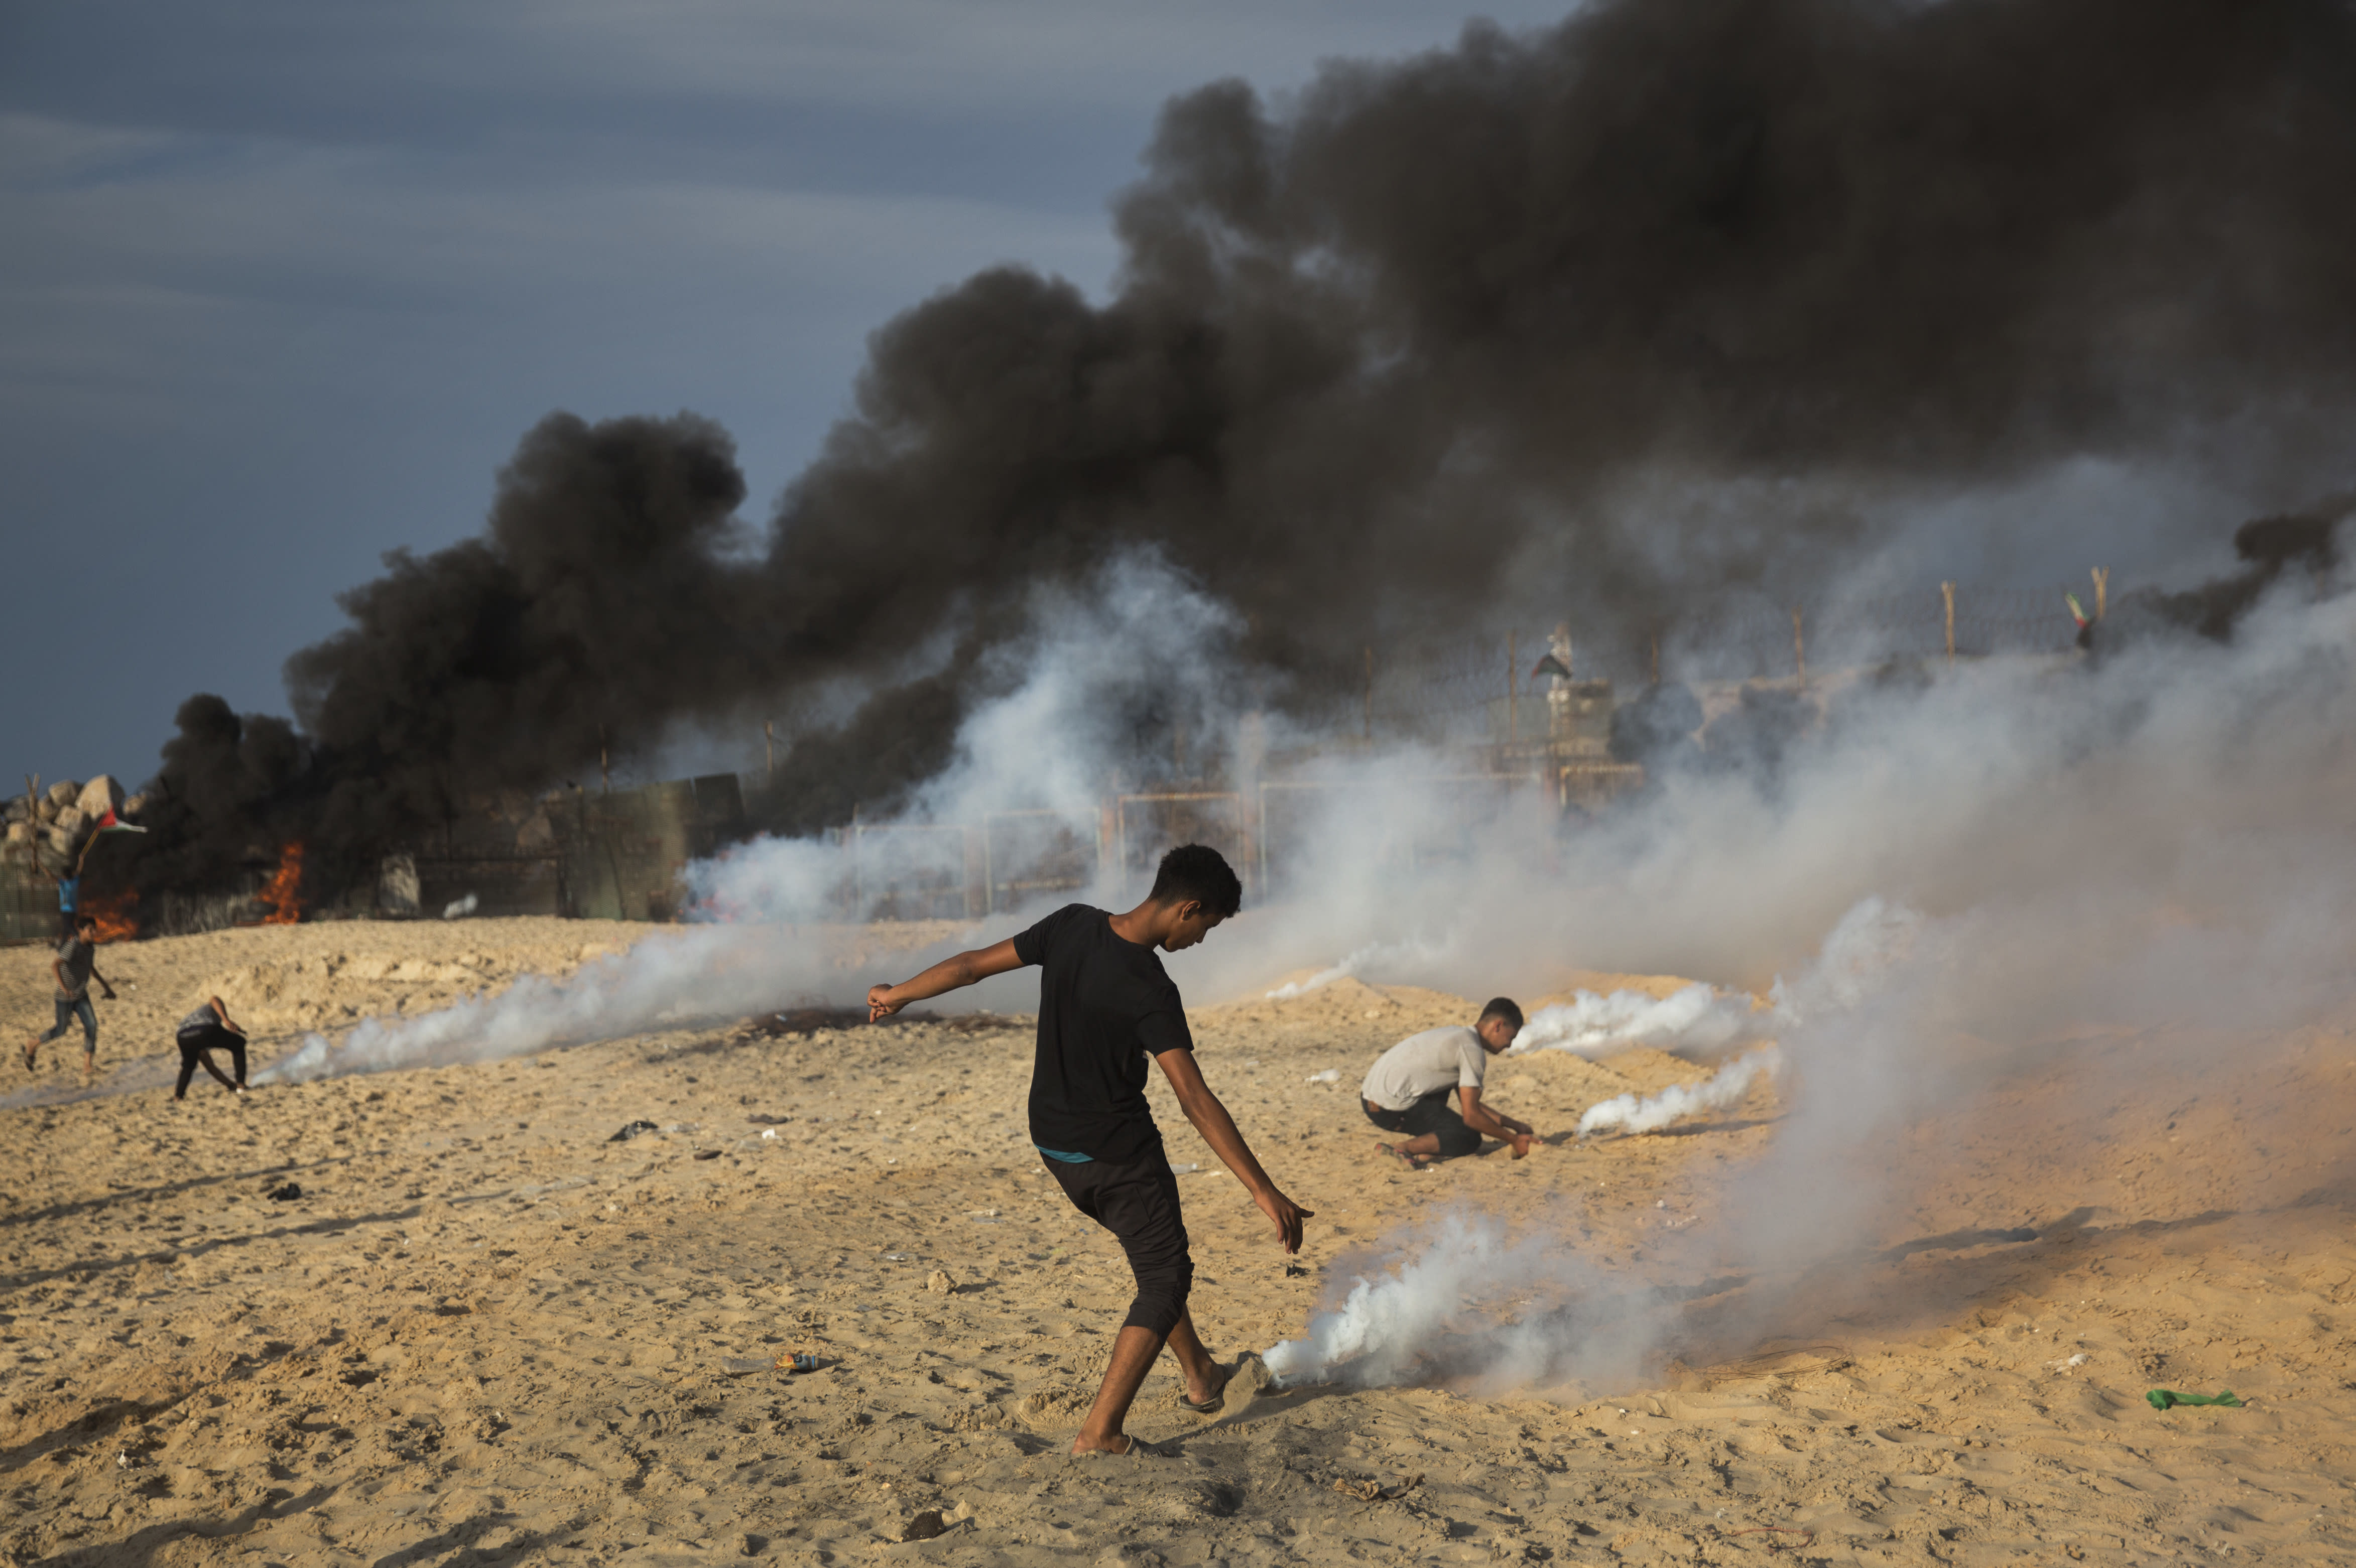 Palestinian protesters cover with sand teargas canisters fired by Israeli troops with sand during a protest on the beach at the border with Israel near Beit Lahiya, northern Gaza Strip, Monday, Oct. 15, 2018.(AP Photo/Khalil Hamra)